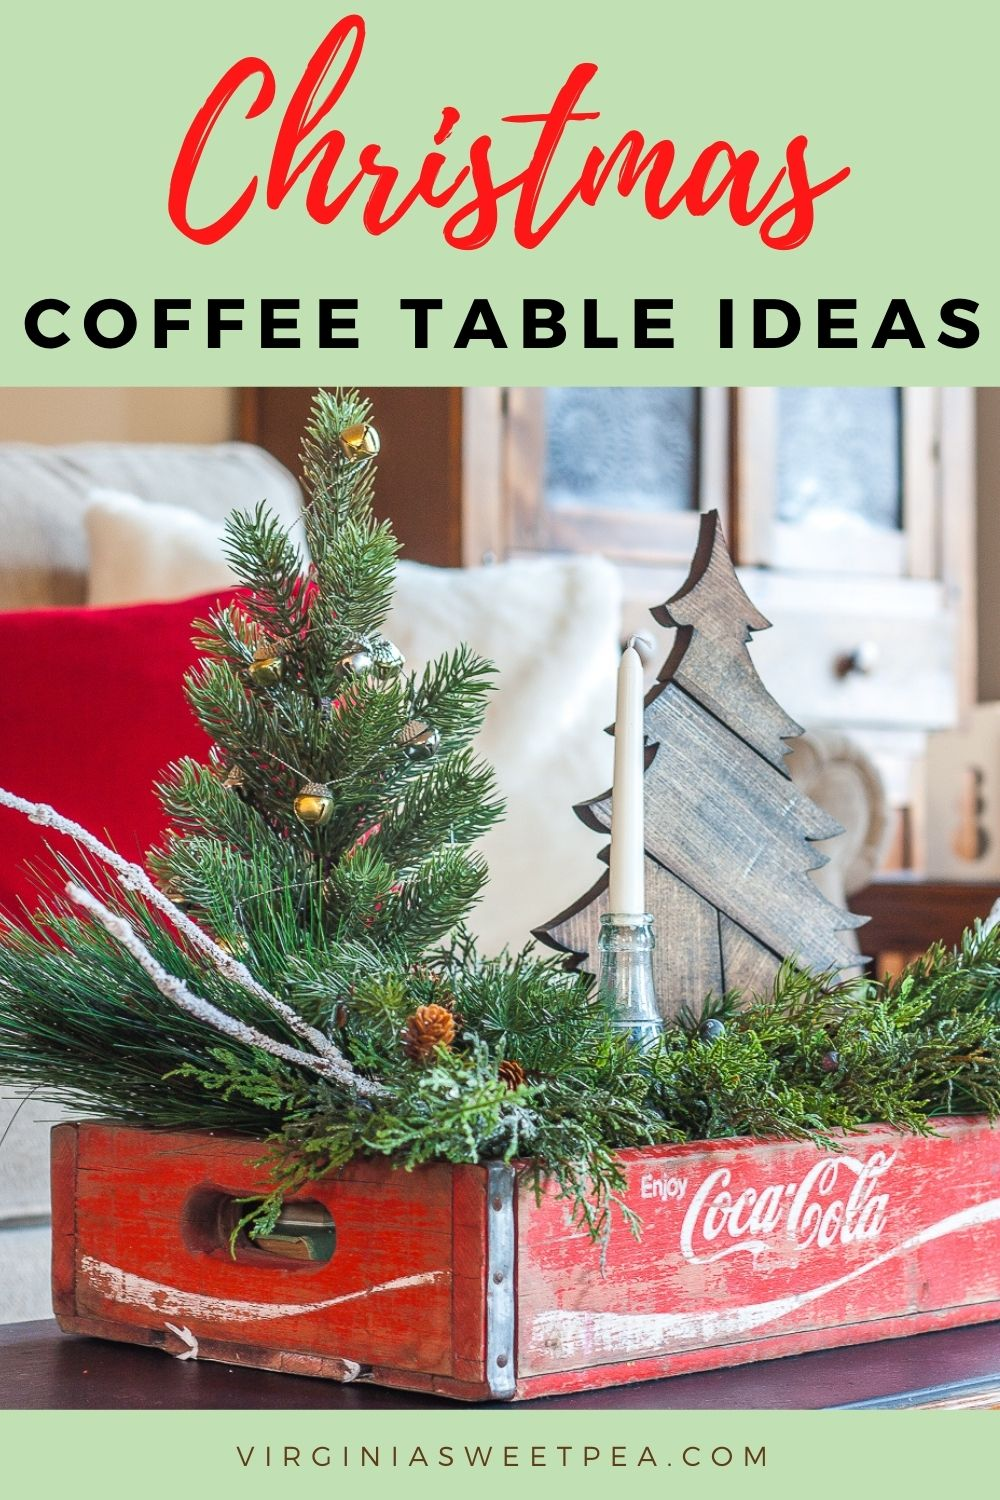 Christmas Coffee Table Ideas- Puzzled over how to decorate your coffee table for Christmas?  See bunches of creative ideas for decorating a coffee table for Christmas with a crate in many styles:  farmhouse, traditional, and more. via @spaula